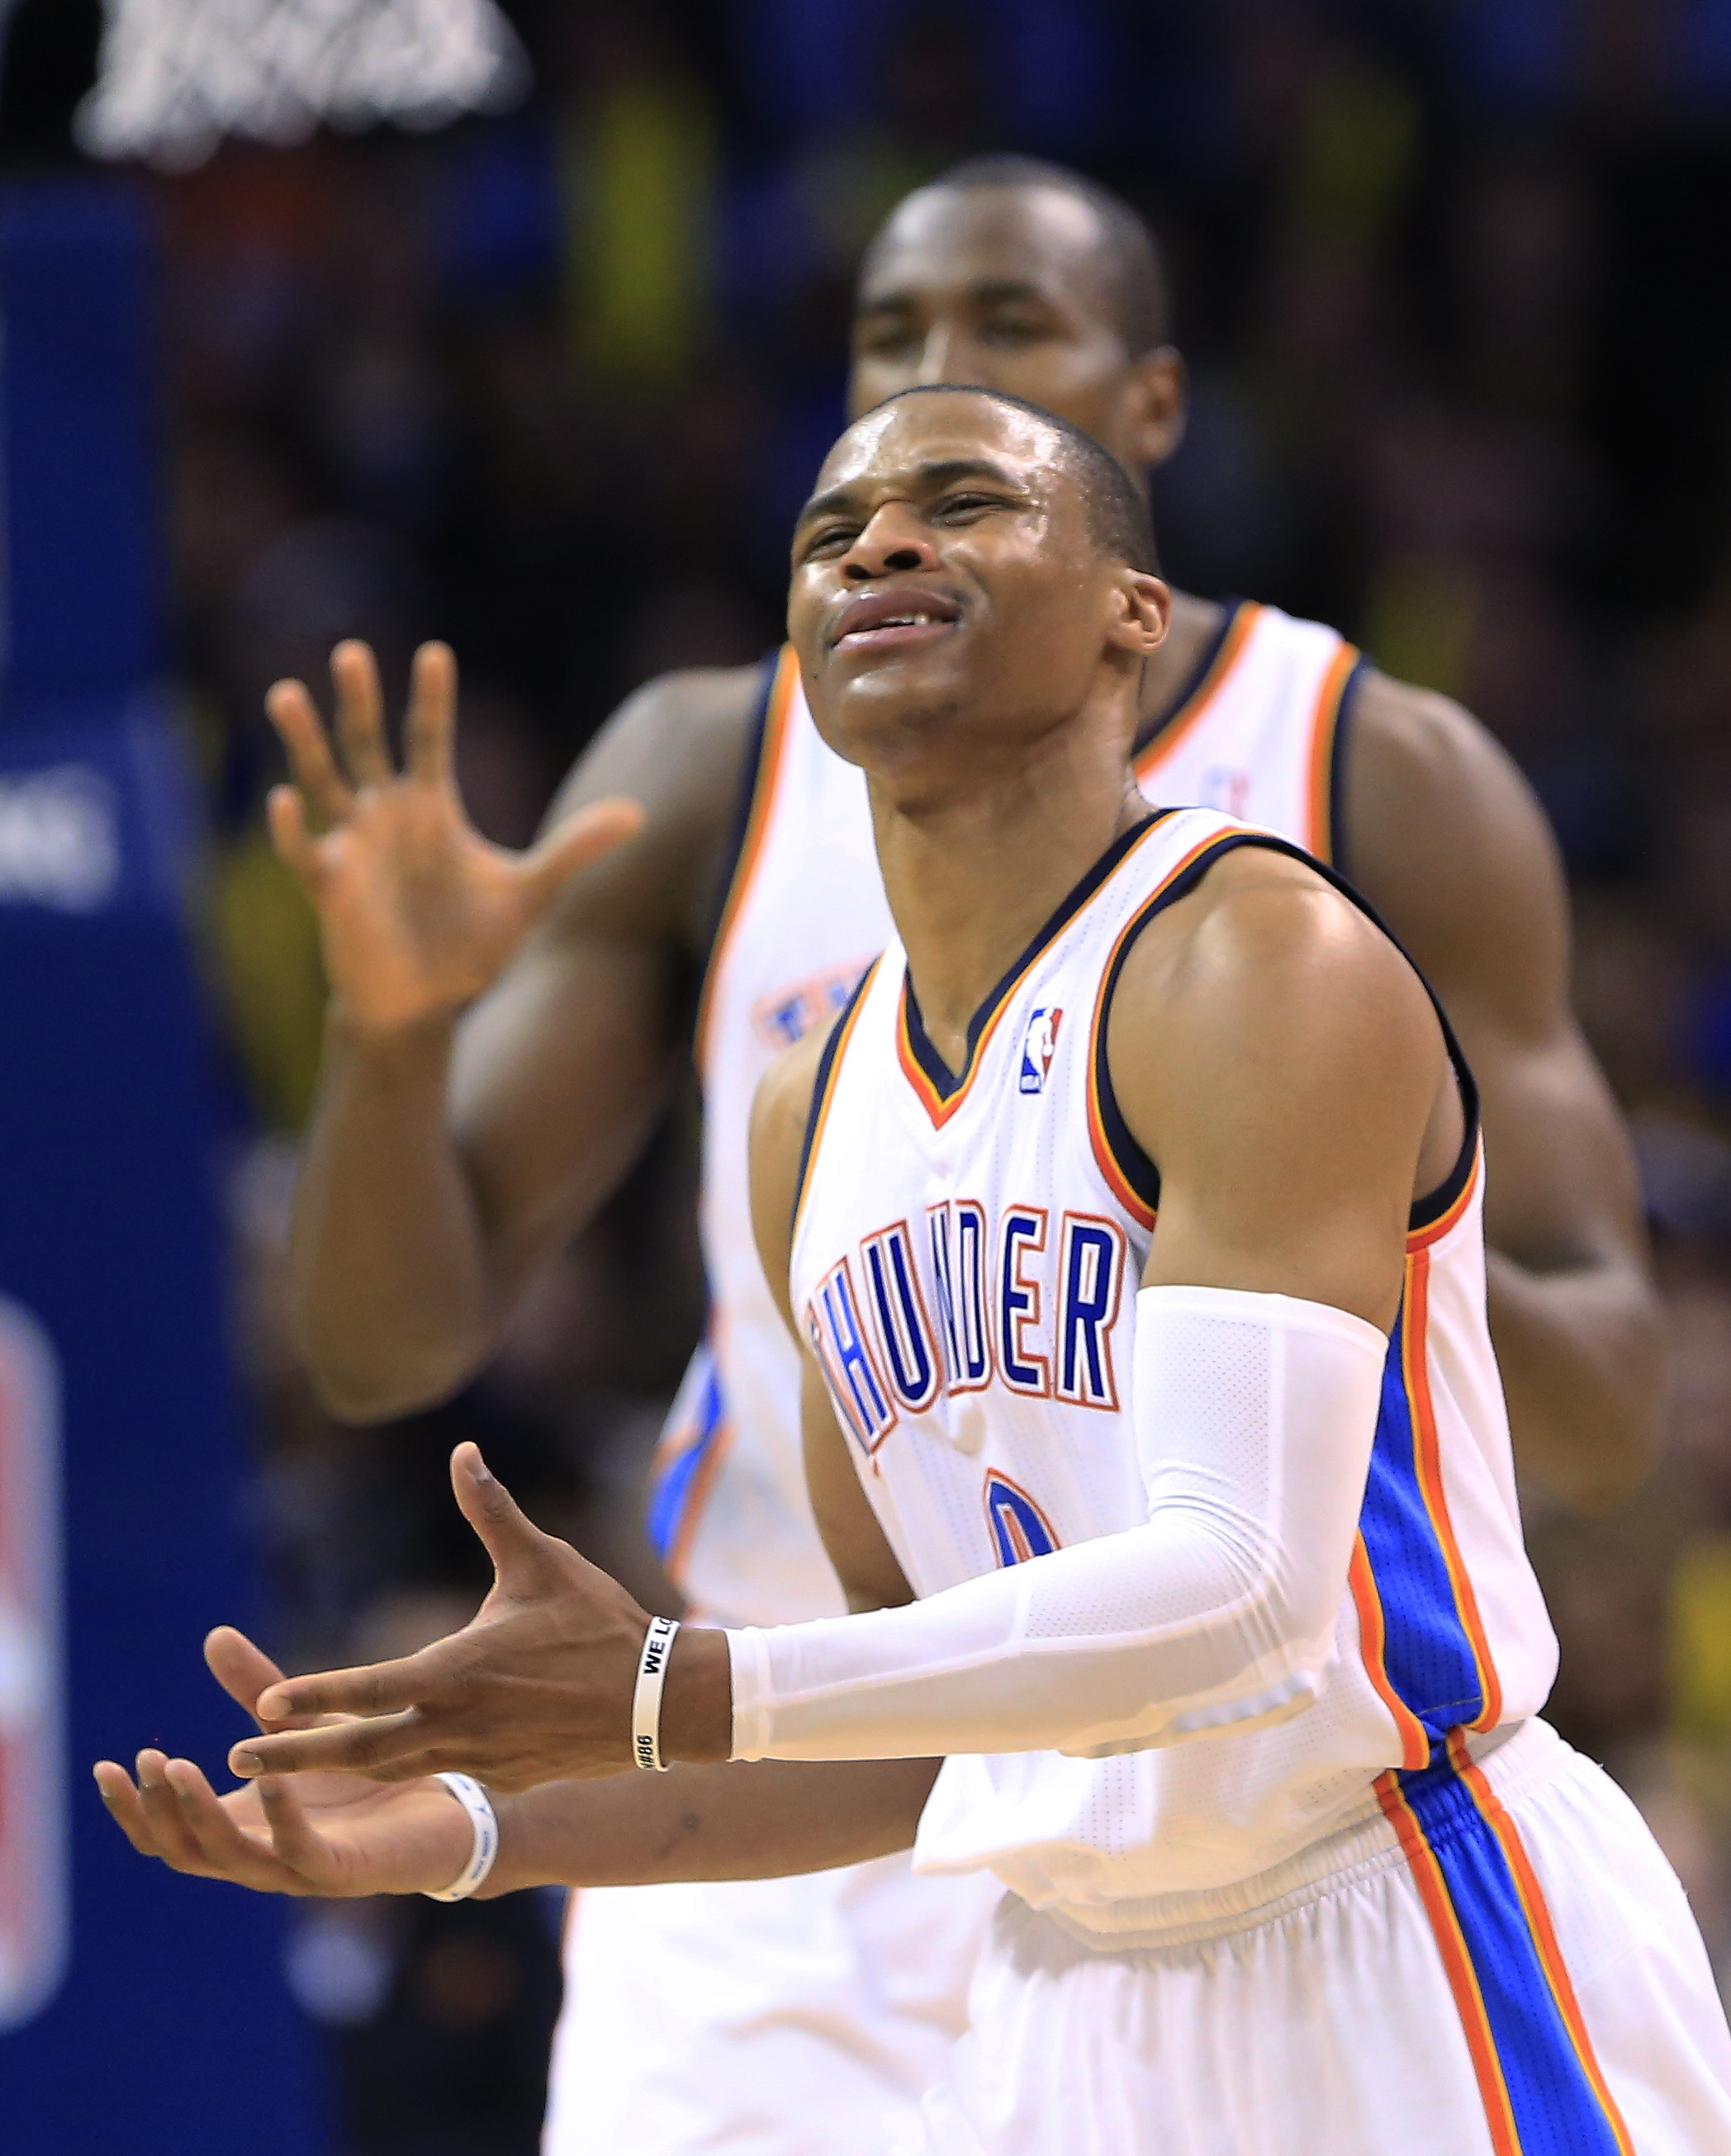 Oklahoma City Thunder guard Russell Westbrook (0) reacts to an official's call during the third quarter of an NBA basketball game against the Los Angeles Lakers in Oklahoma City, Thursday, March 13, 2014. Oklahoma City won 131-102